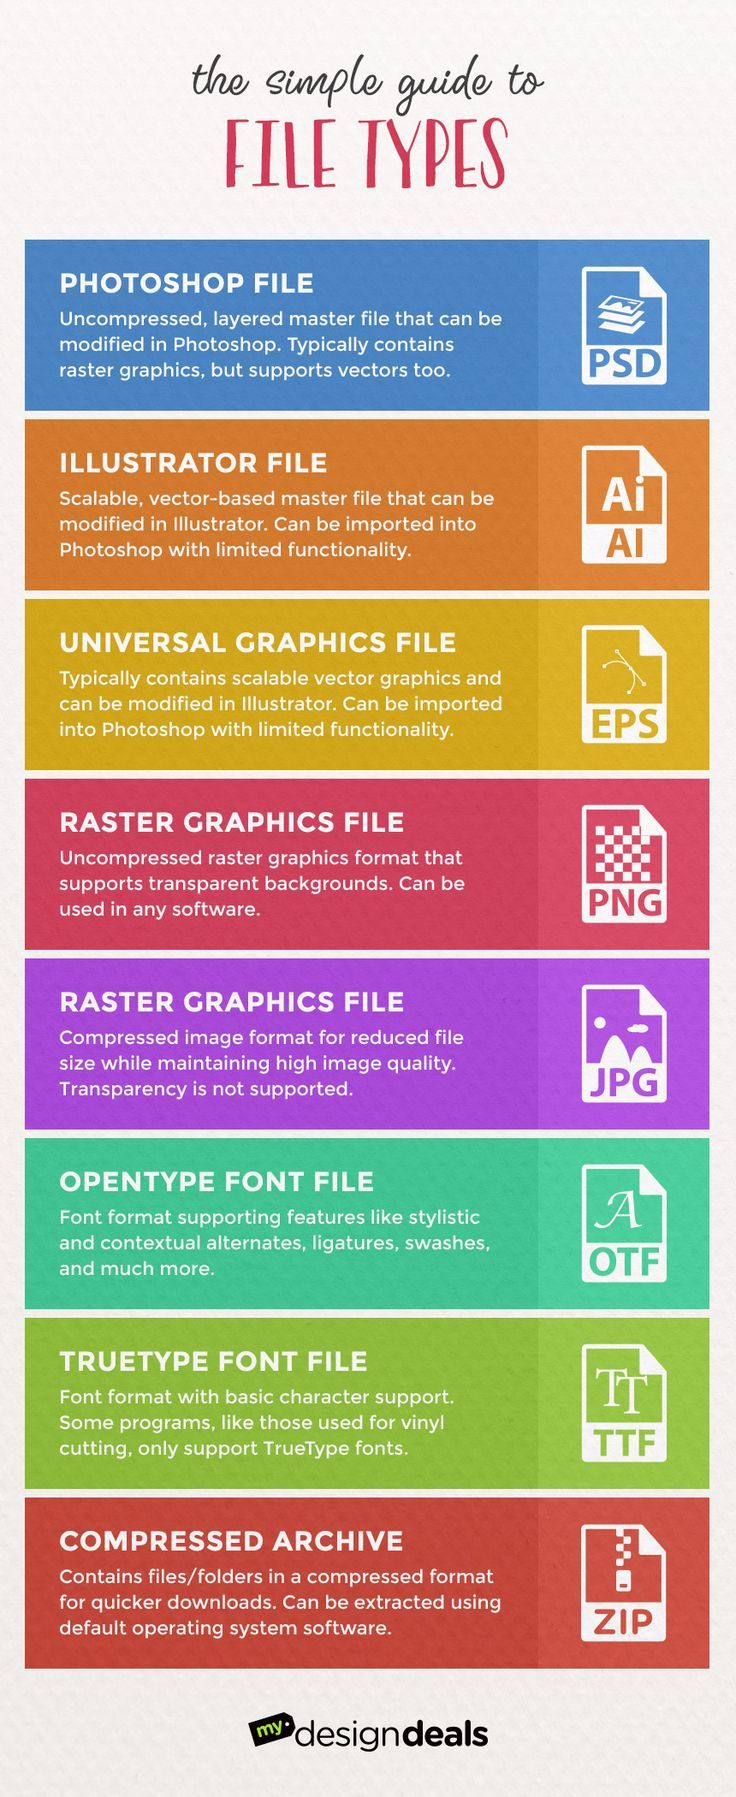 Your Simple Guide to File Types